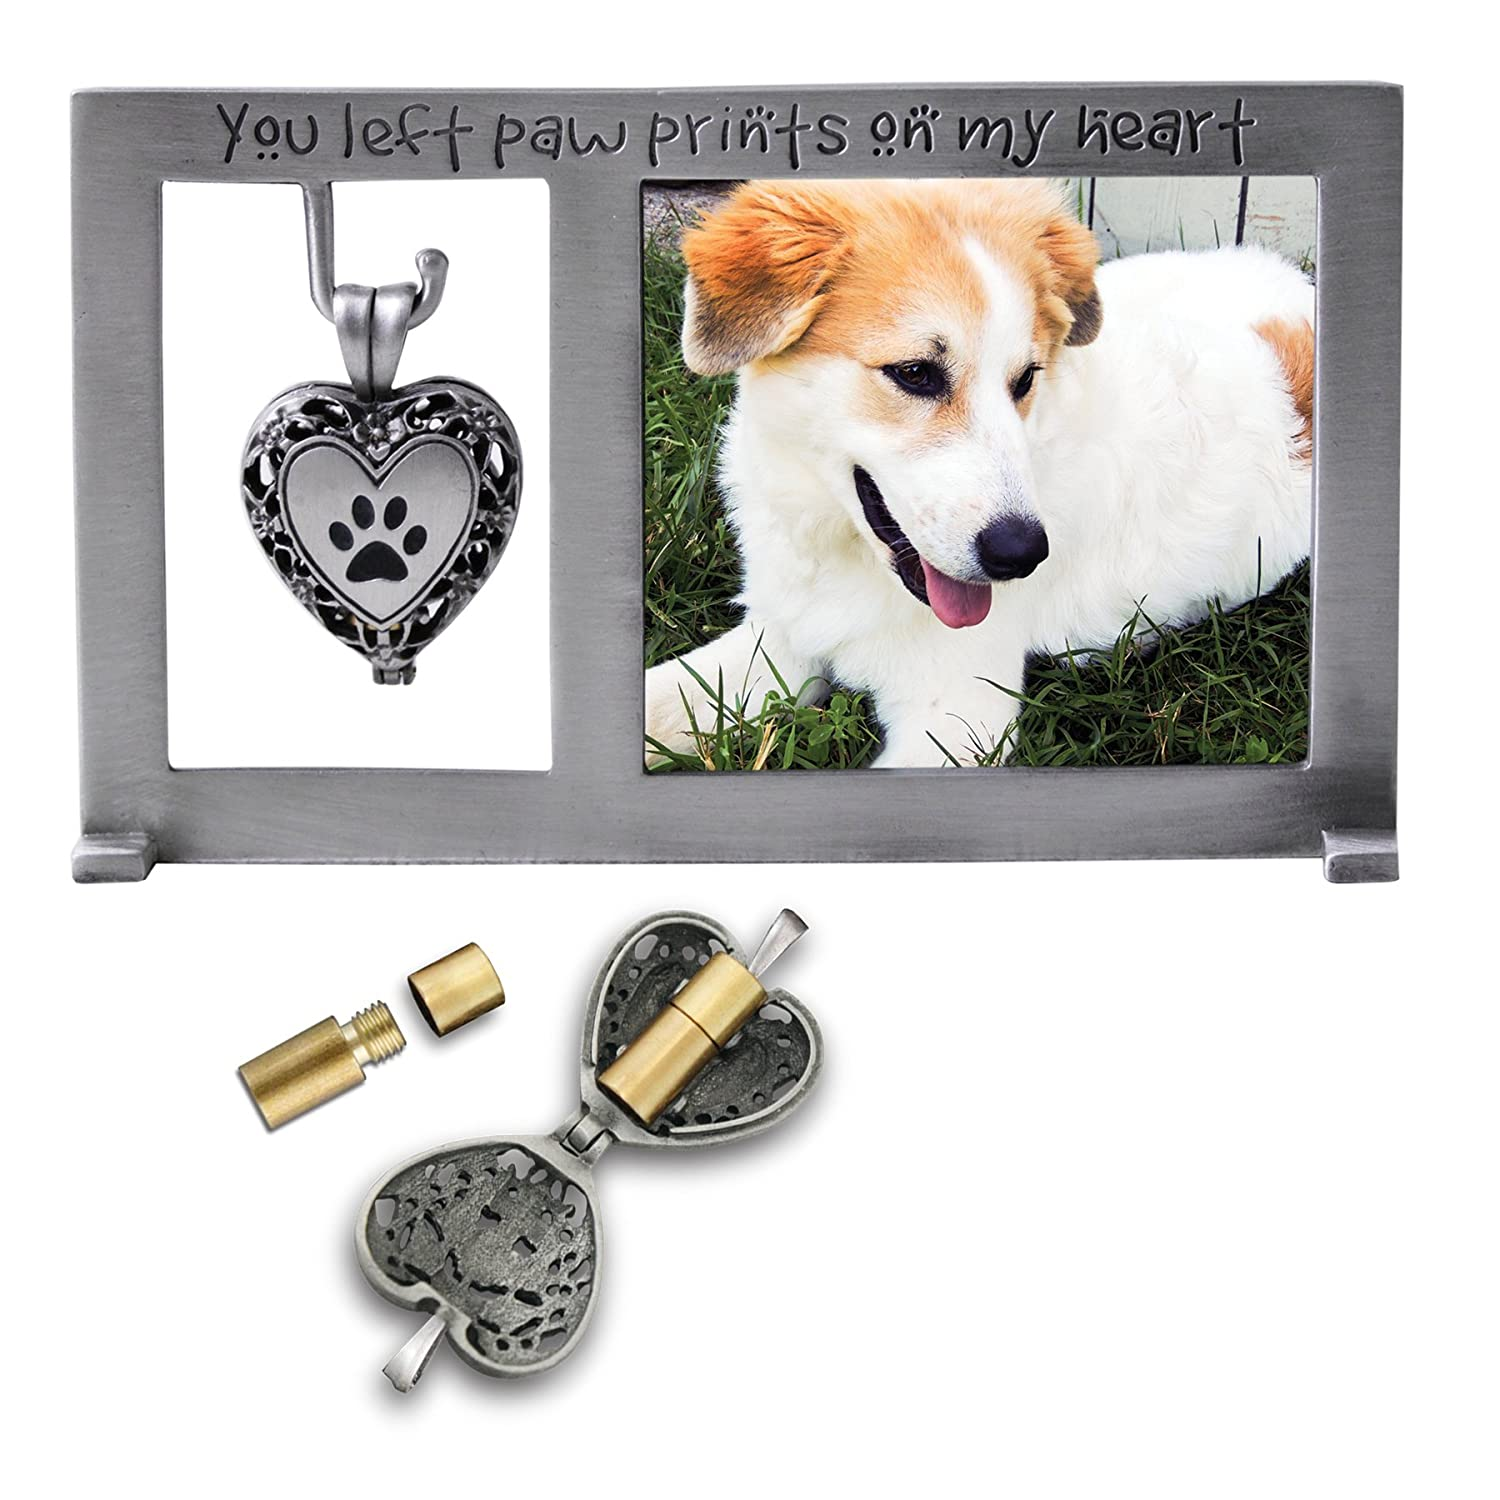 Amazon cathedral art pf404 pet memorial frame with vial for amazon cathedral art pf404 pet memorial frame with vial for ashes 5 14 by 3 inch home kitchen jeuxipadfo Choice Image